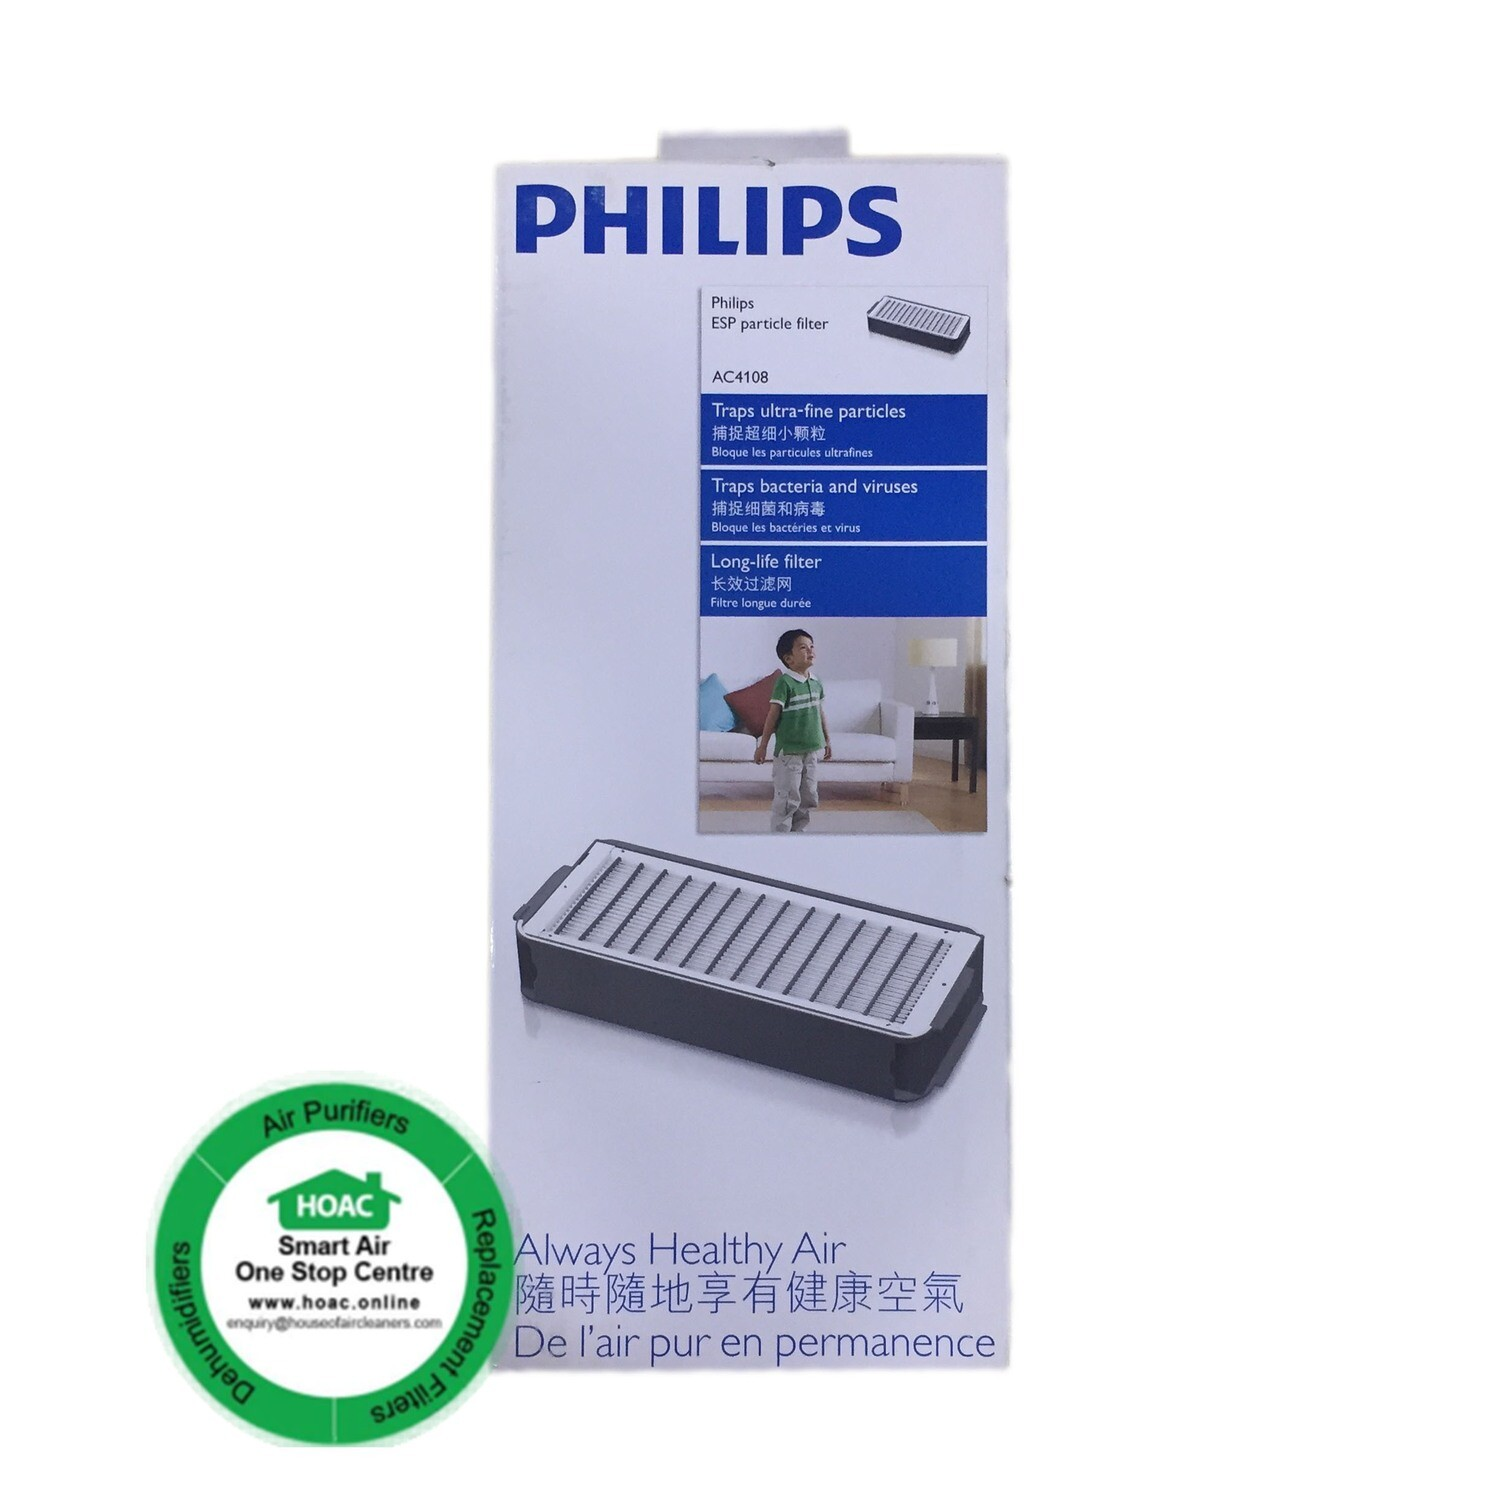 Philips ESP Particle Filter AC4108 for Model AC-4054/AC-4055